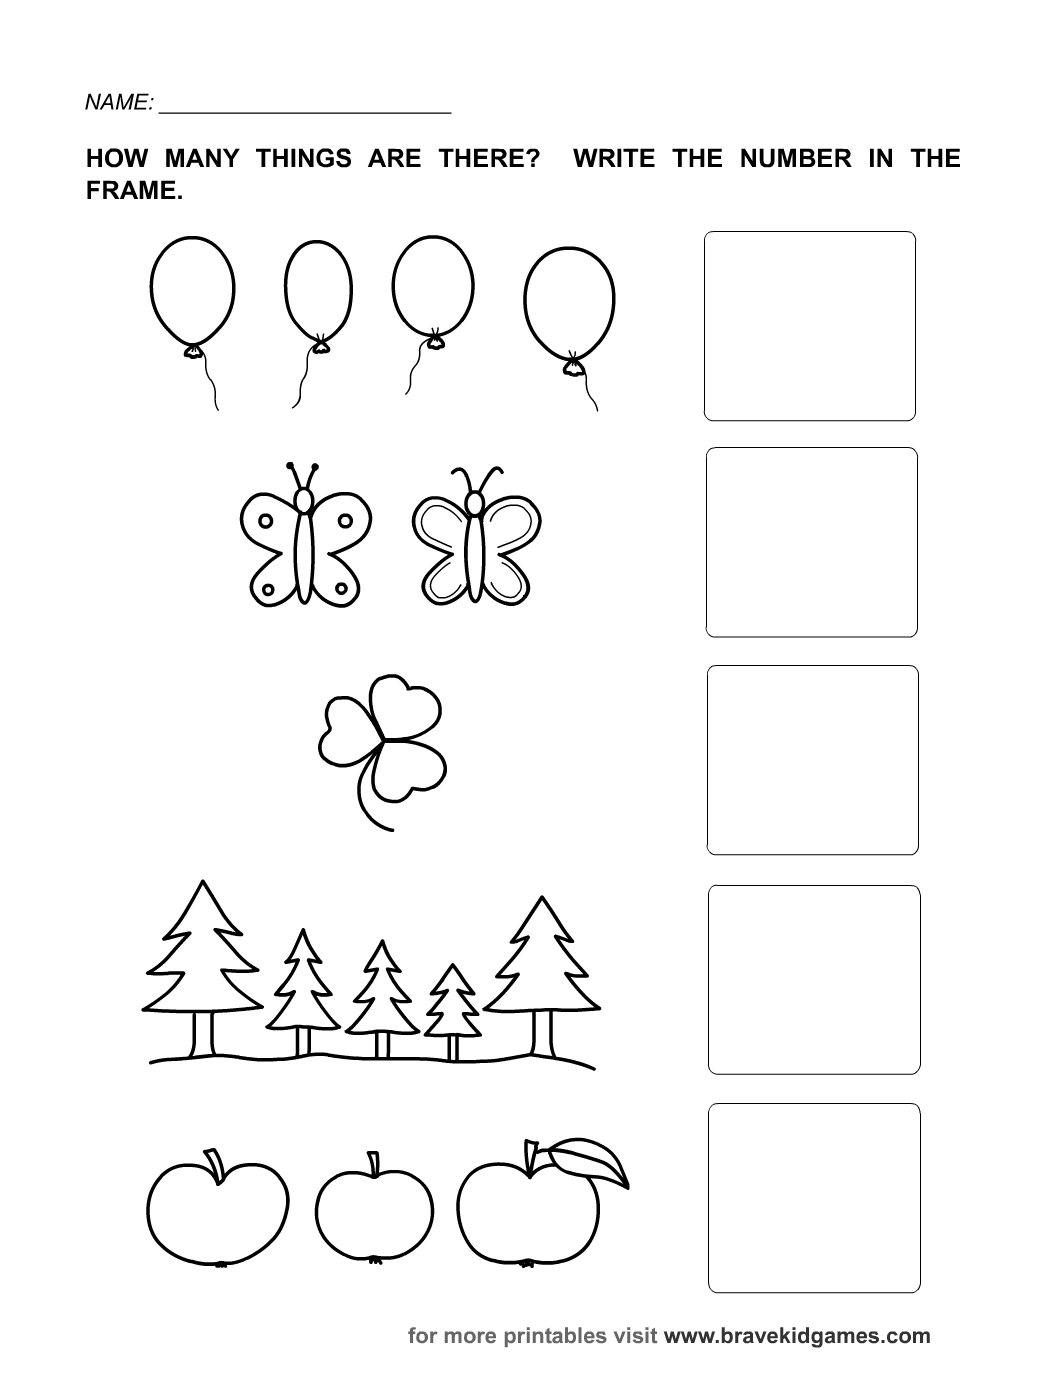 Worksheets For Numbers - kindergarten worksheets dynamically created ...